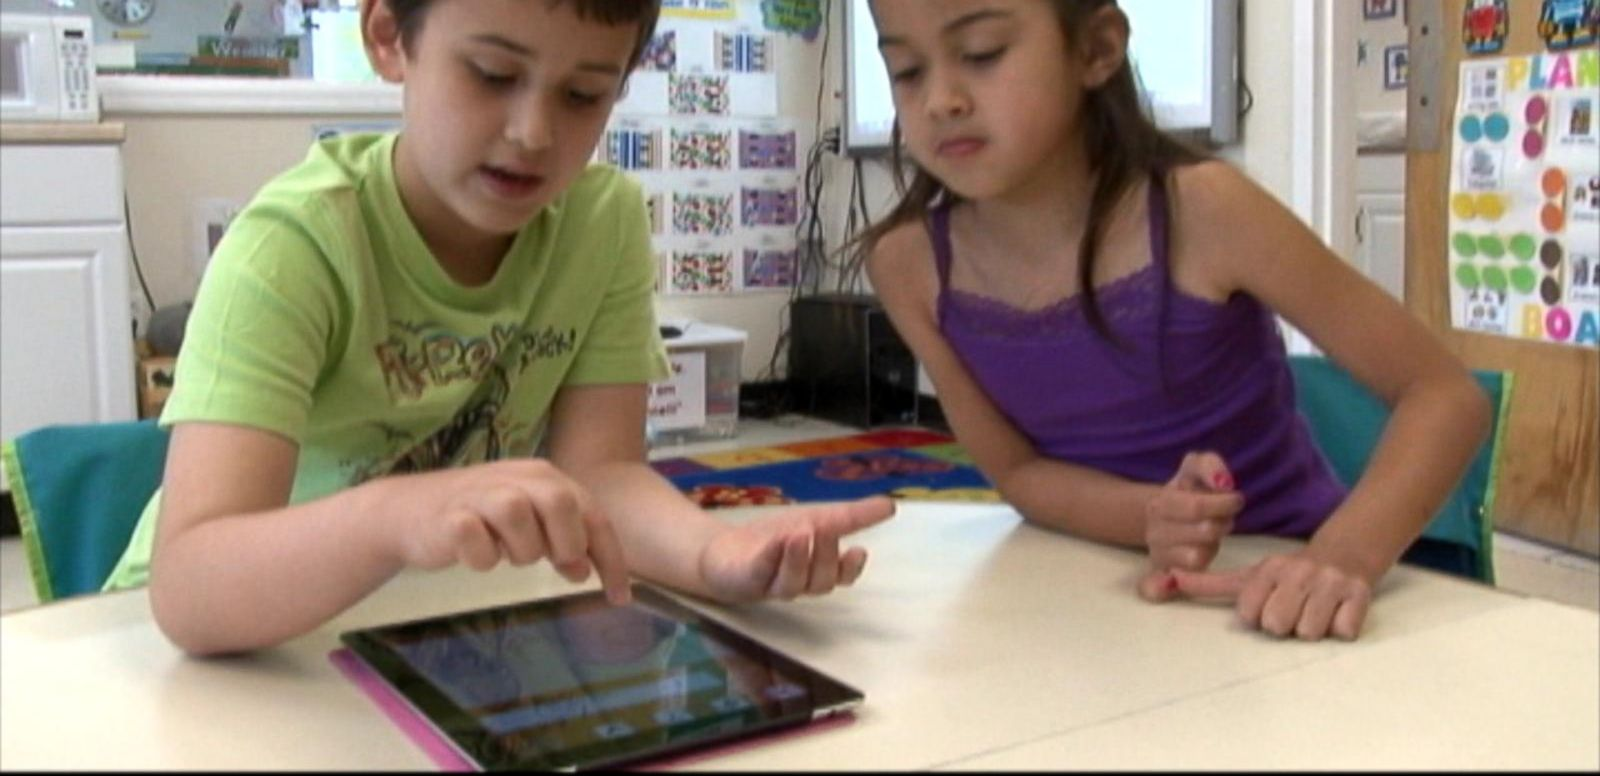 VIDEO: Kids Use of Smartphones, Tablets Doesn't Have to Come With Big Bills